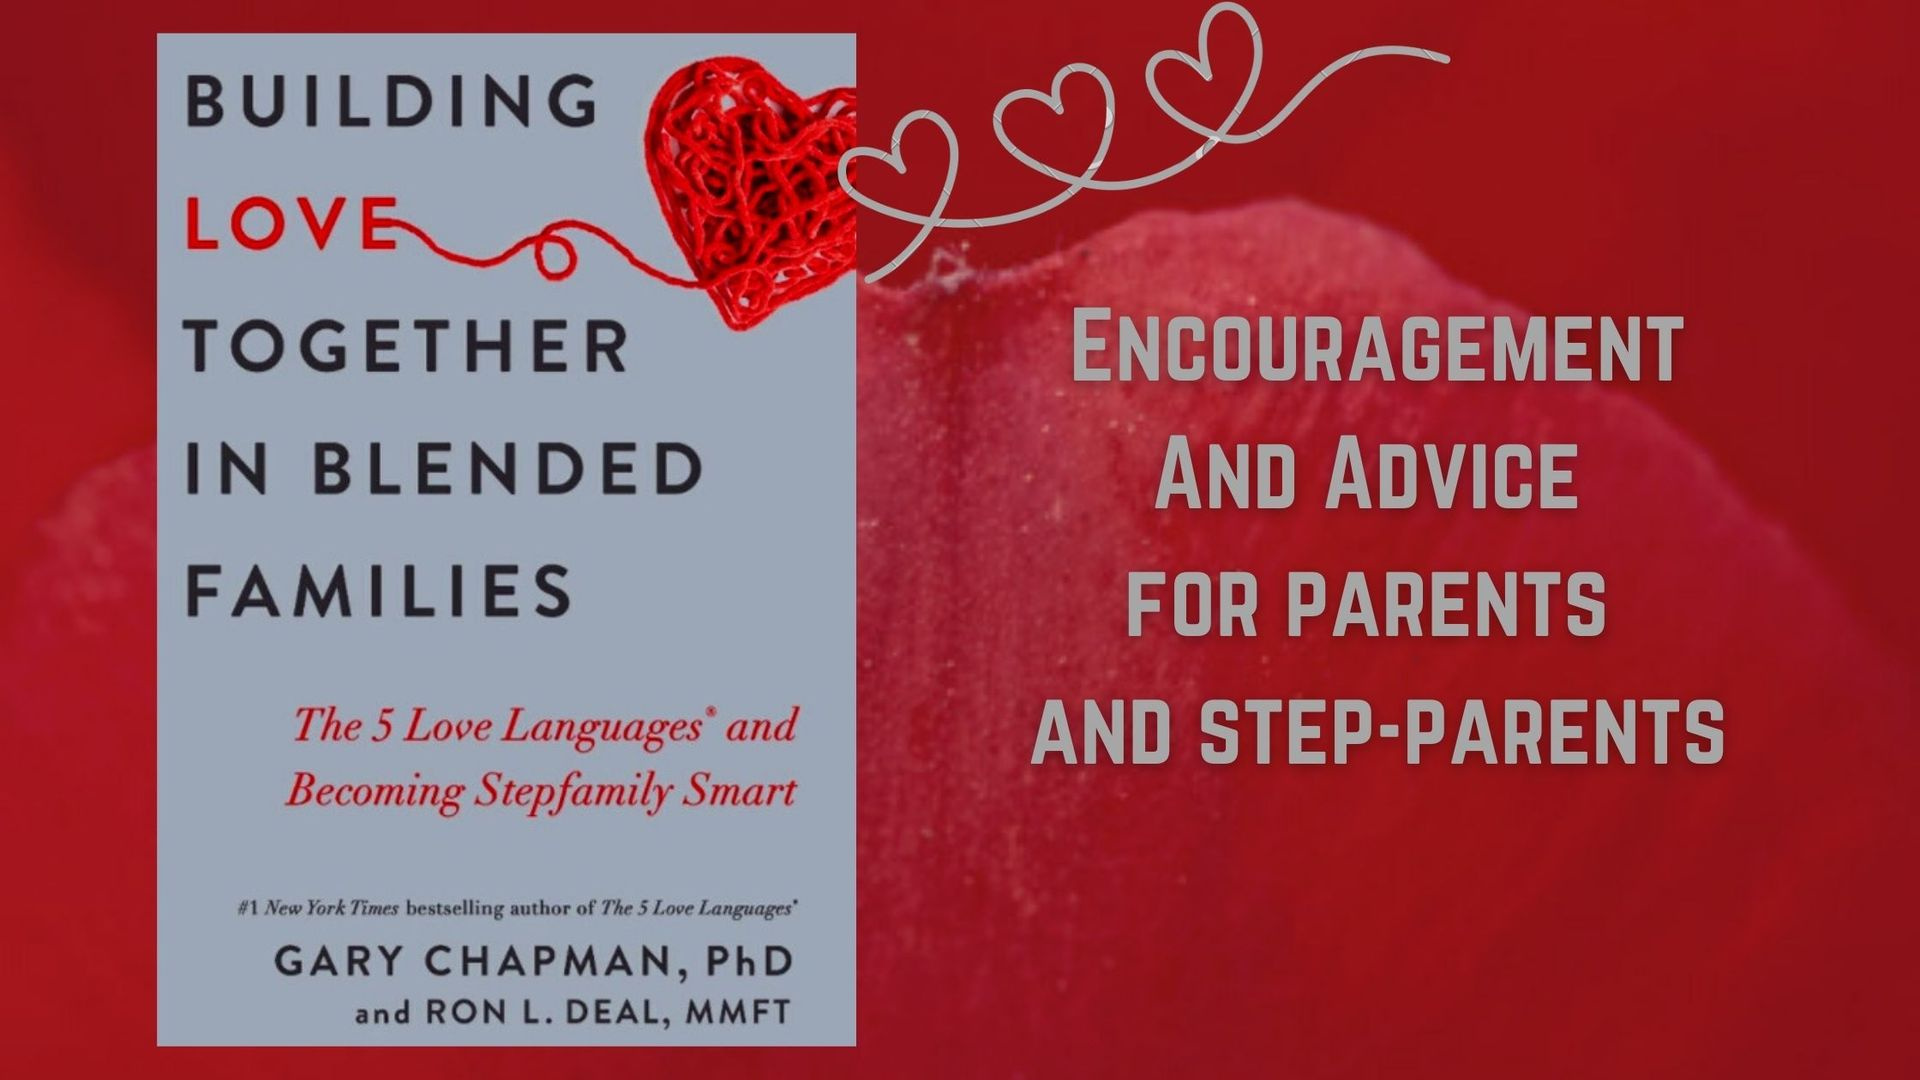 Building Love Together in Blended Families, a new book by Gary Chapman and Ron L Deal